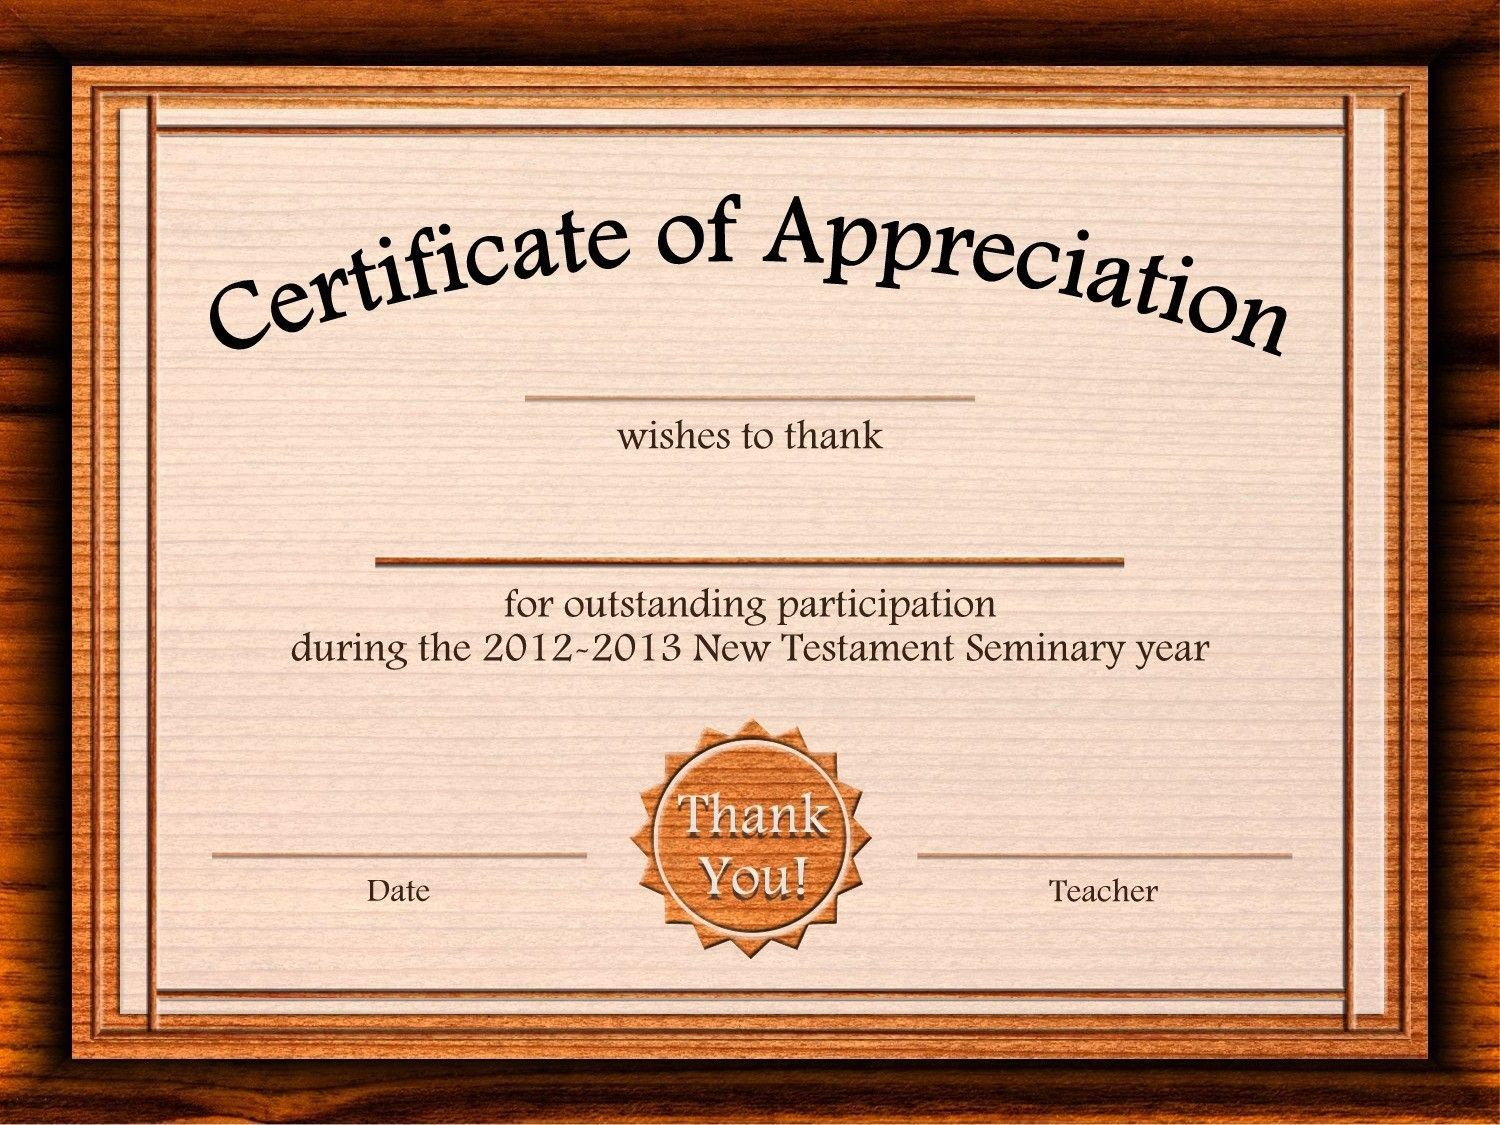 003 Astounding Free Certificate Template Microsoft Word Sample  Of Authenticity Art Puppy Birth MarriageFull